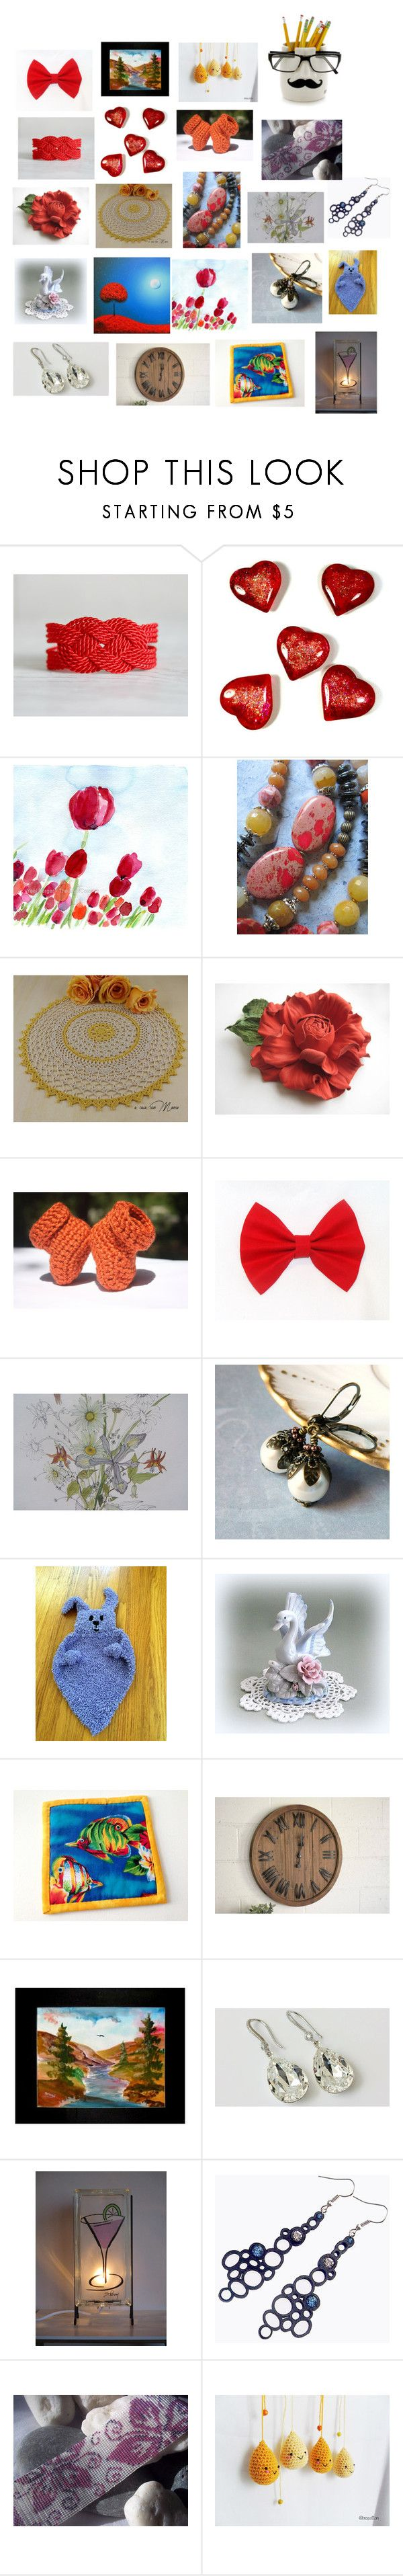 """""""Nuova collezione"""" by acasaconmanu ❤ liked on Polyvore featuring Giallo"""